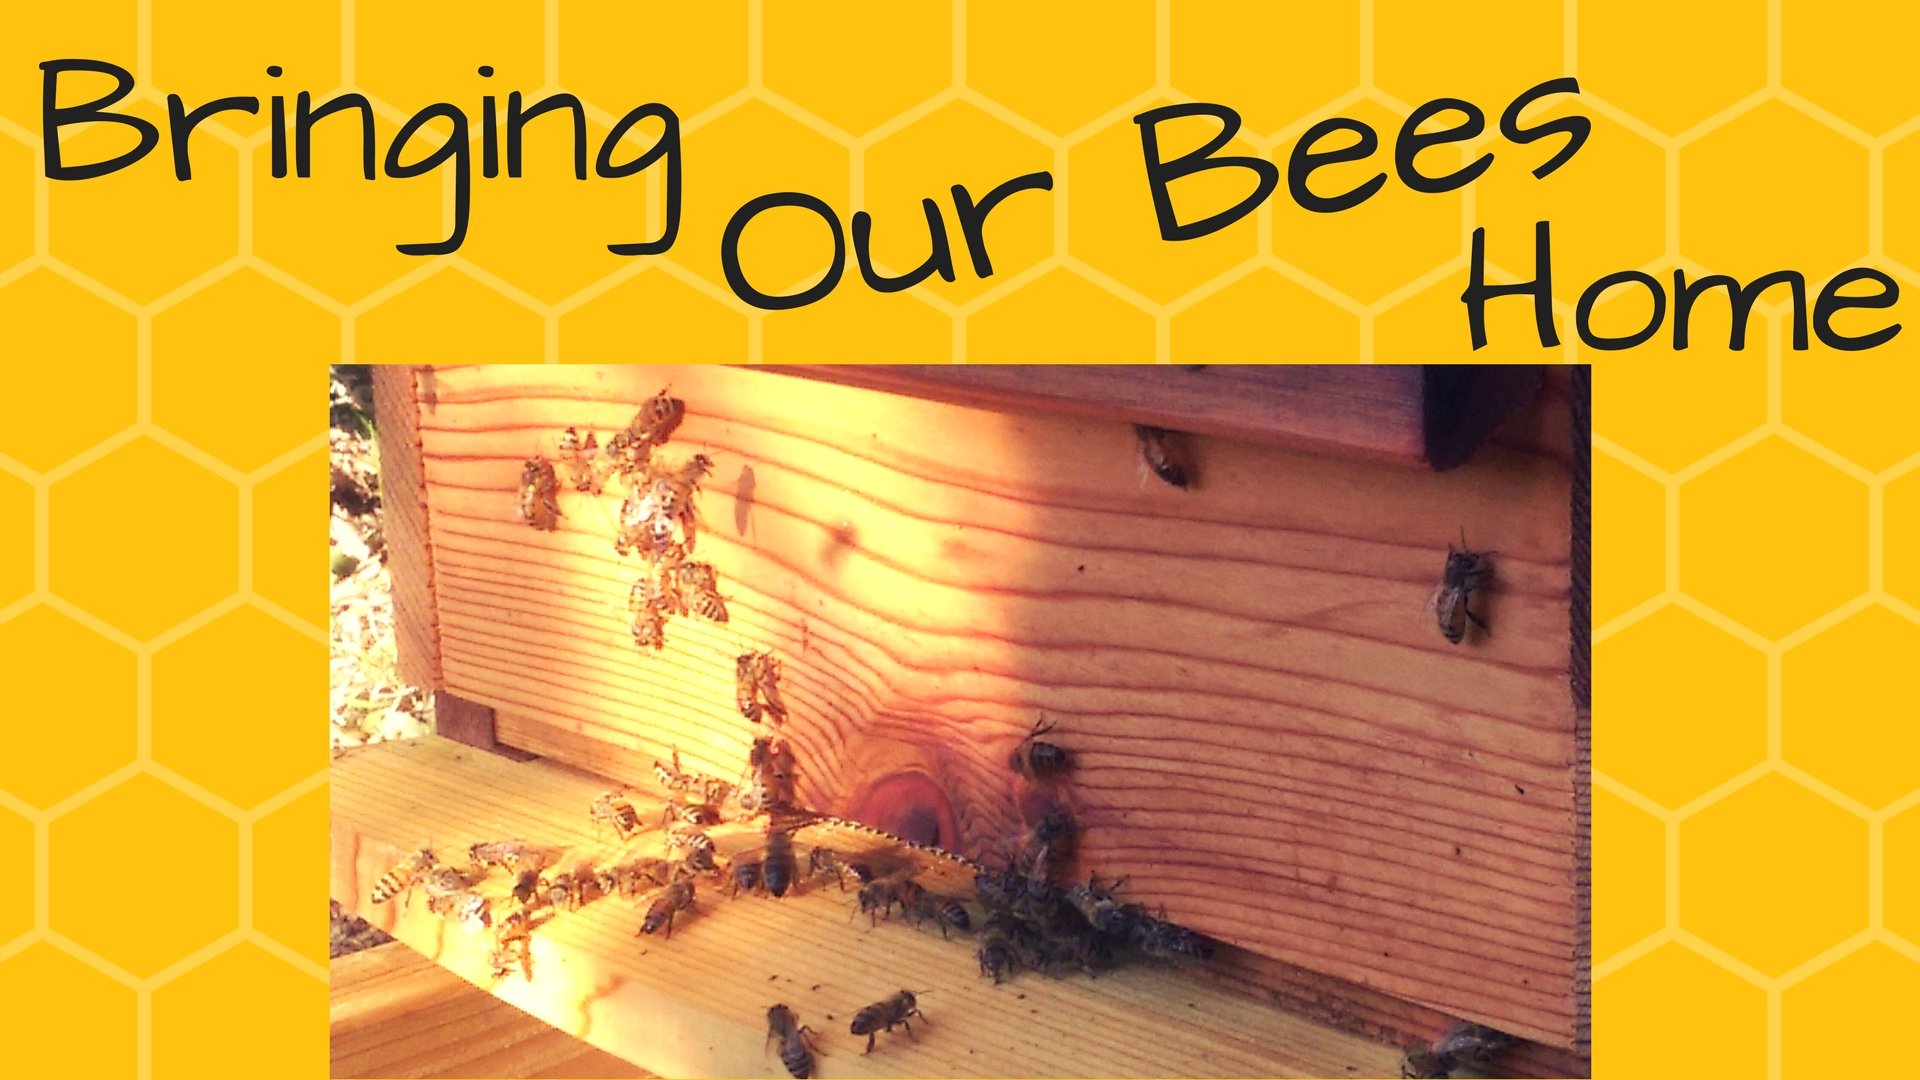 Bringing Our Bees Home.jpg